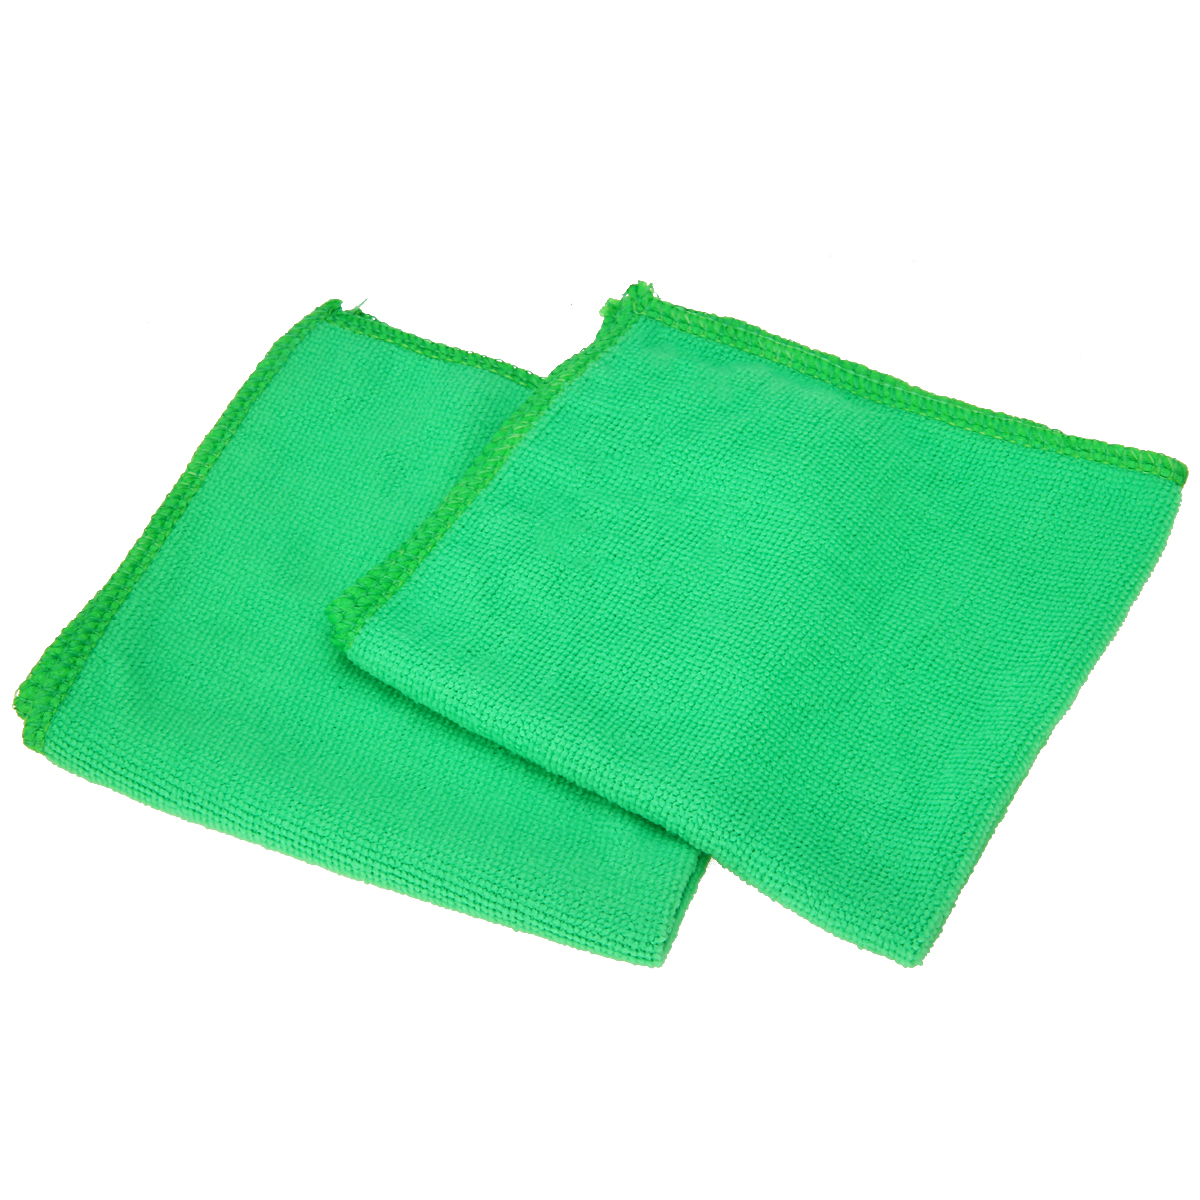 Image 5 - Mayitr 10 Pcs Car Microfiber Clean Towel 25*25CM Car Soft Microfiber Absorbent Wash Cleaning Polish Towel Cloth-in Sponges, Cloths & Brushes from Automobiles & Motorcycles